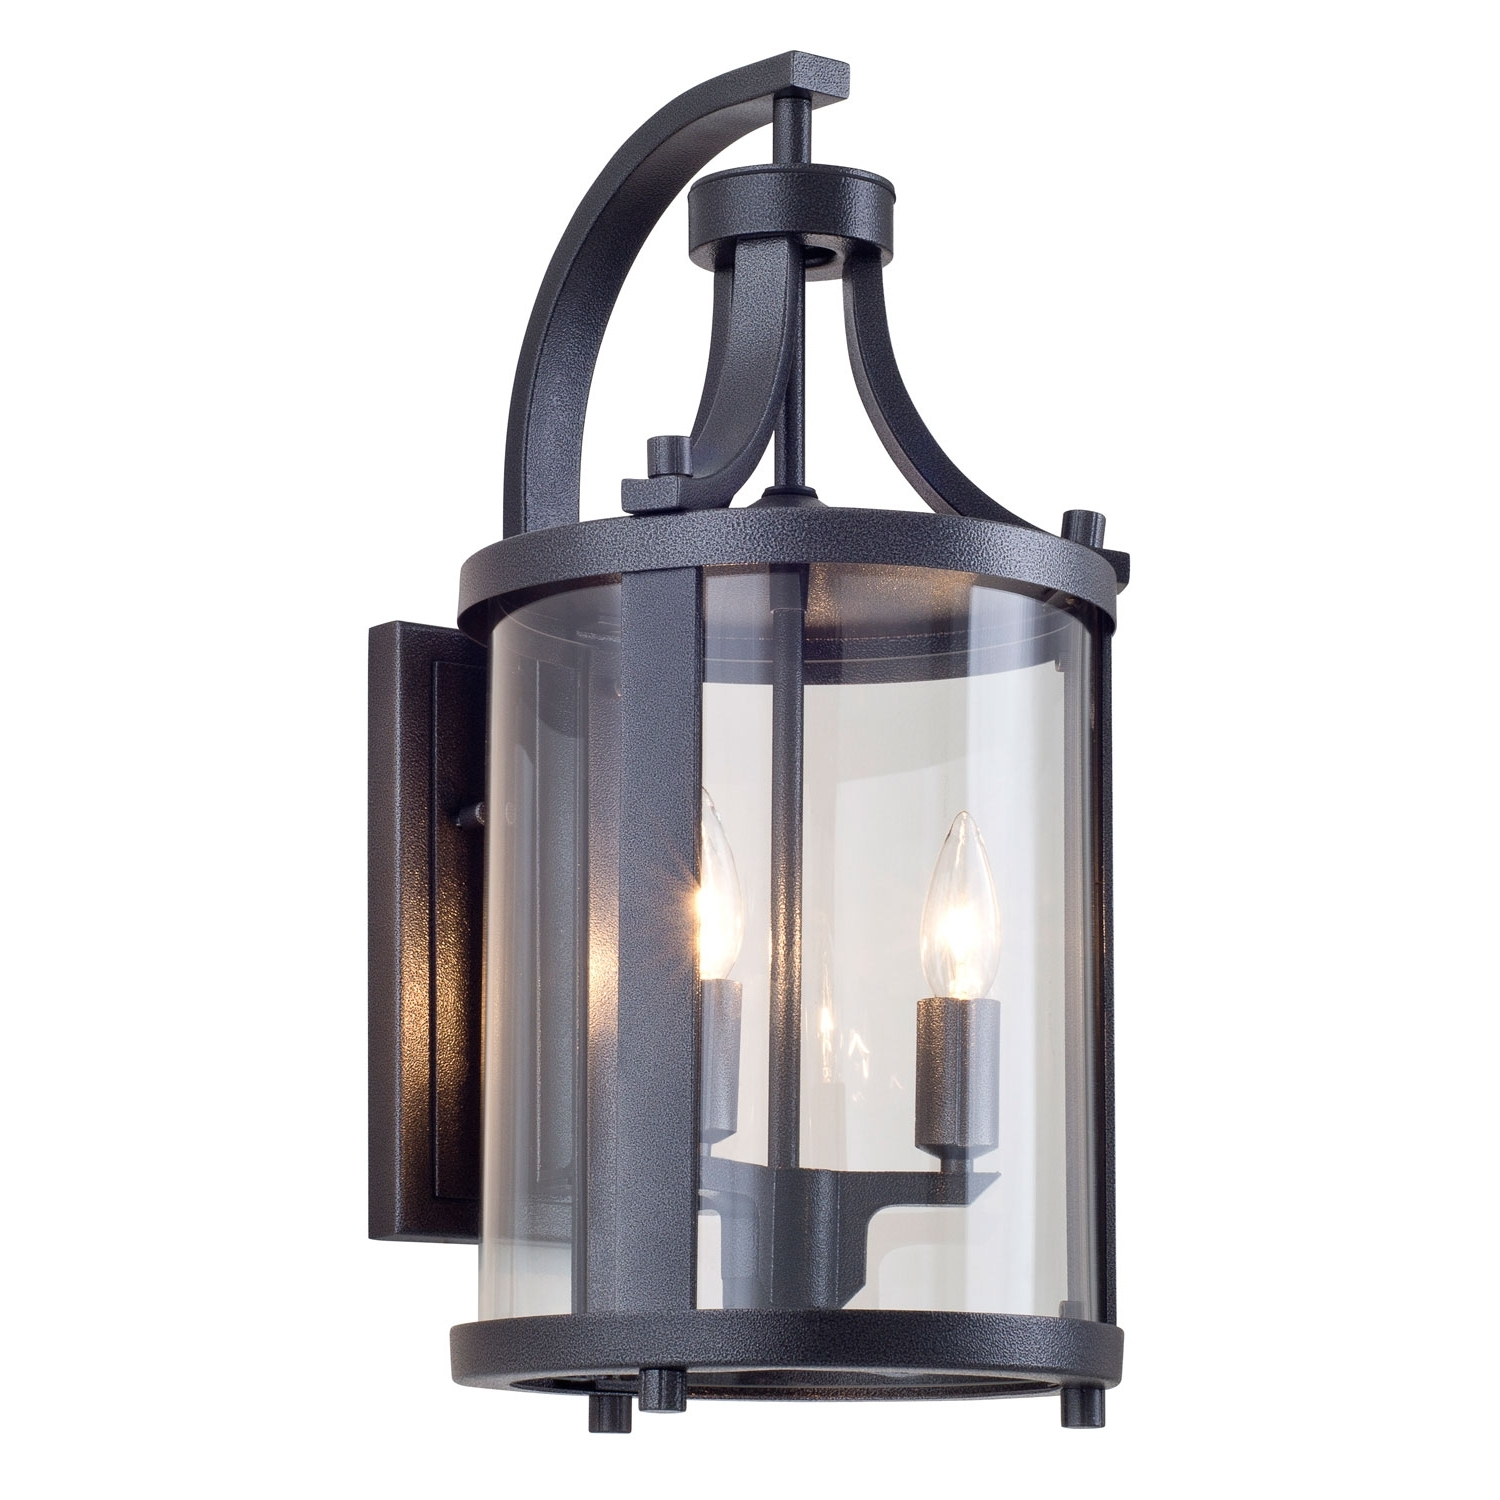 Outdoor Exterior Lanterns In Latest Industrial Outdoor Light Fittings Exterior Pendant Lighting Uk (View 8 of 20)